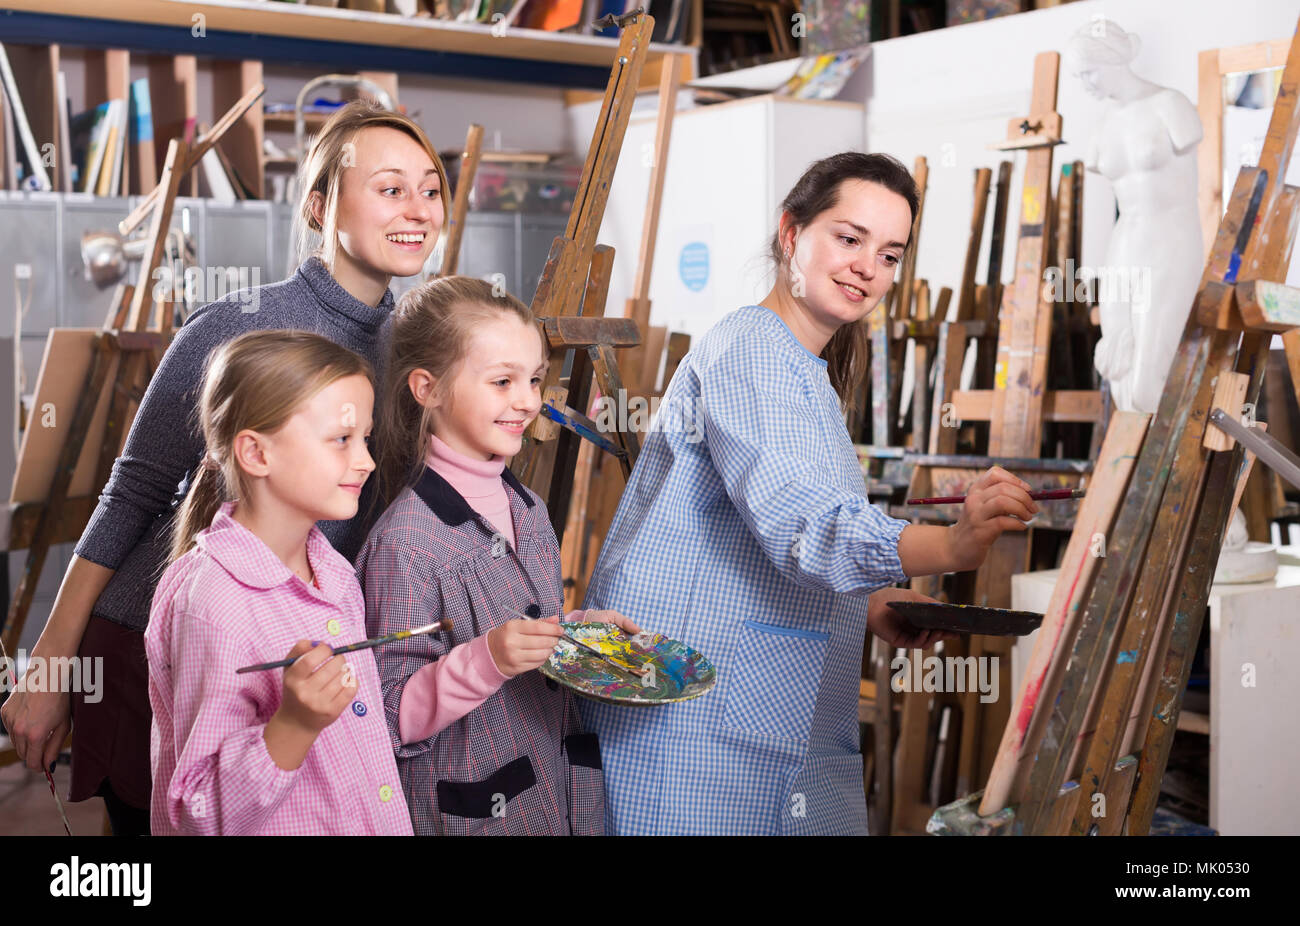 skillful young germany woman teacher showing her skills during painting class at art studio - Stock Image